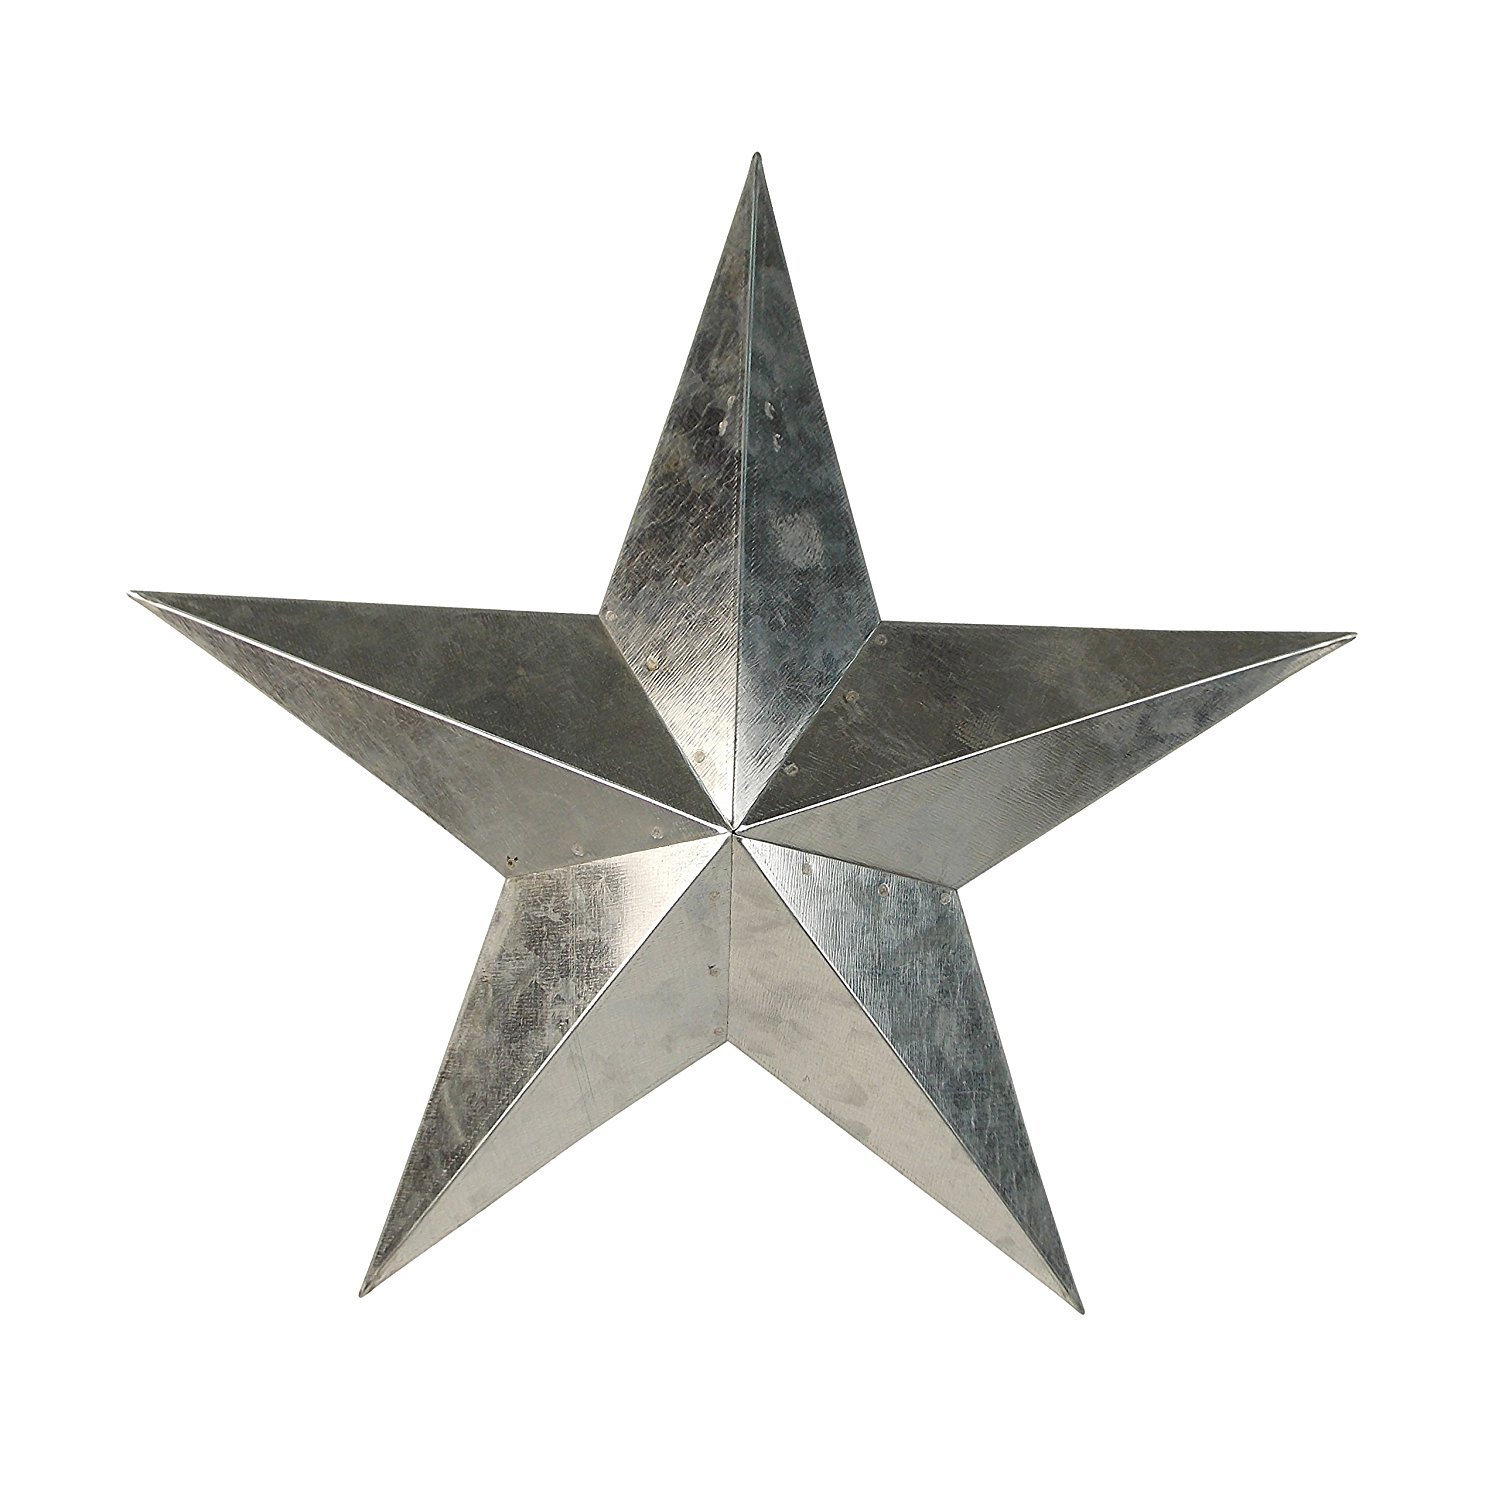 ACCENTHOME Metal Country Tin Galvanized Barn Star Country Primitive Star Wall D/écor 11 2